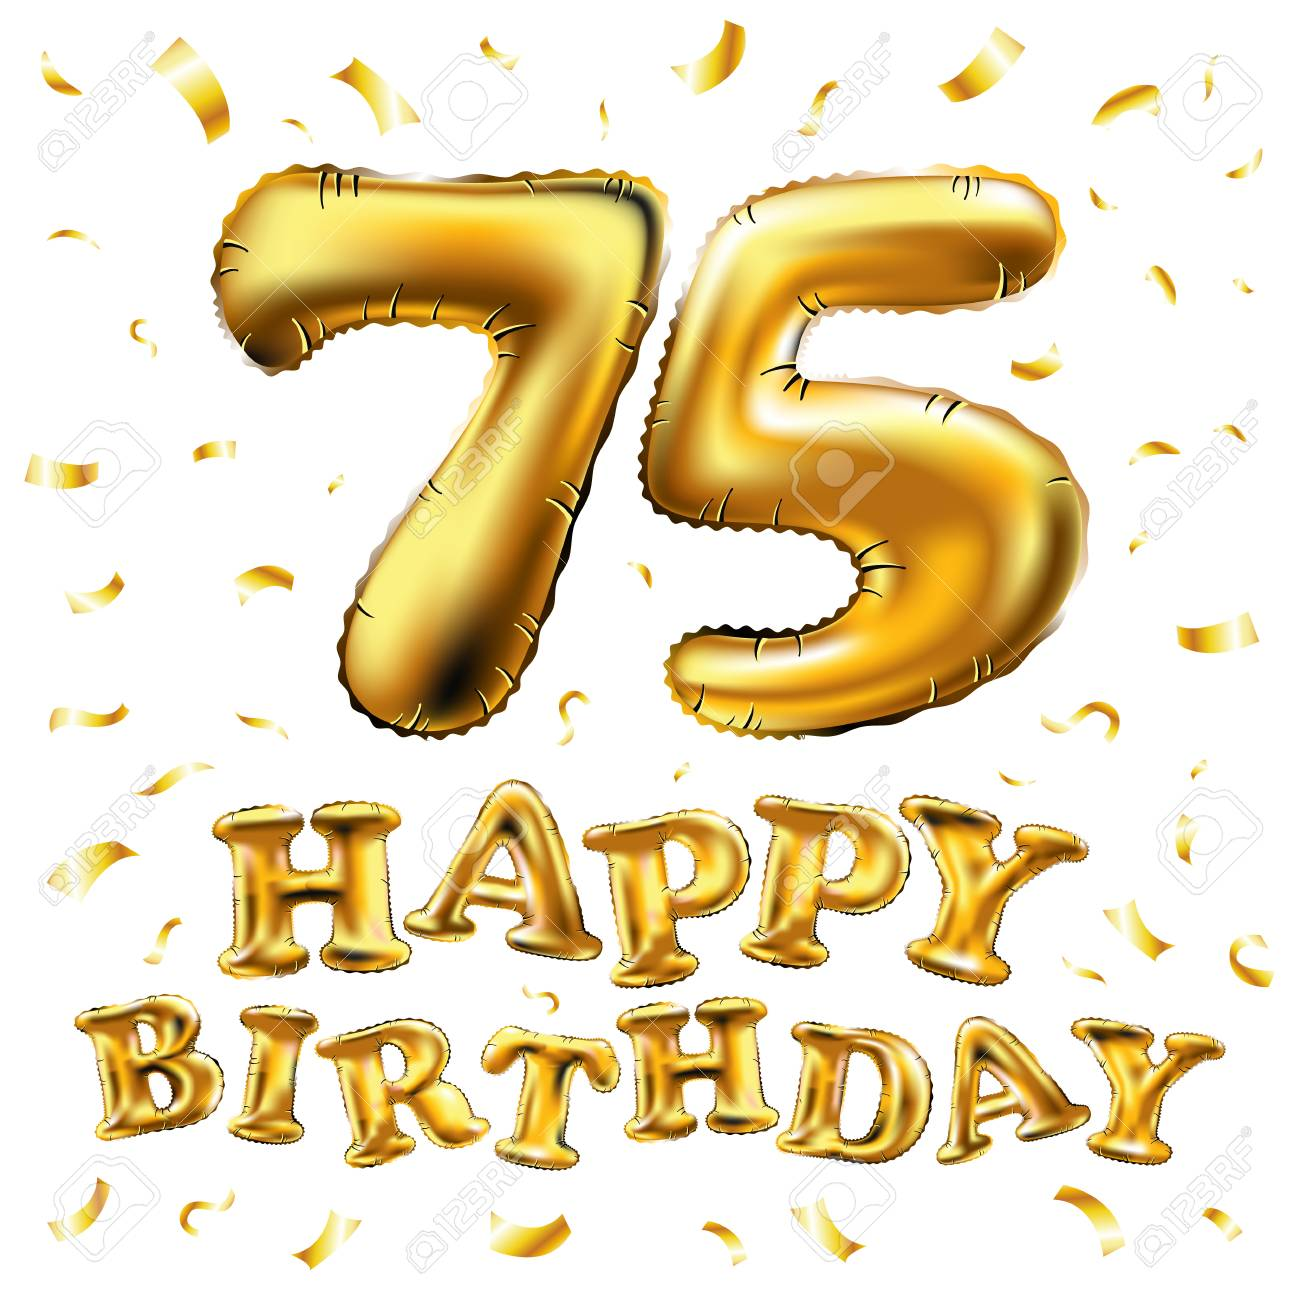 Vector Happy Birthday 75th Celebration Gold Balloons And Golden